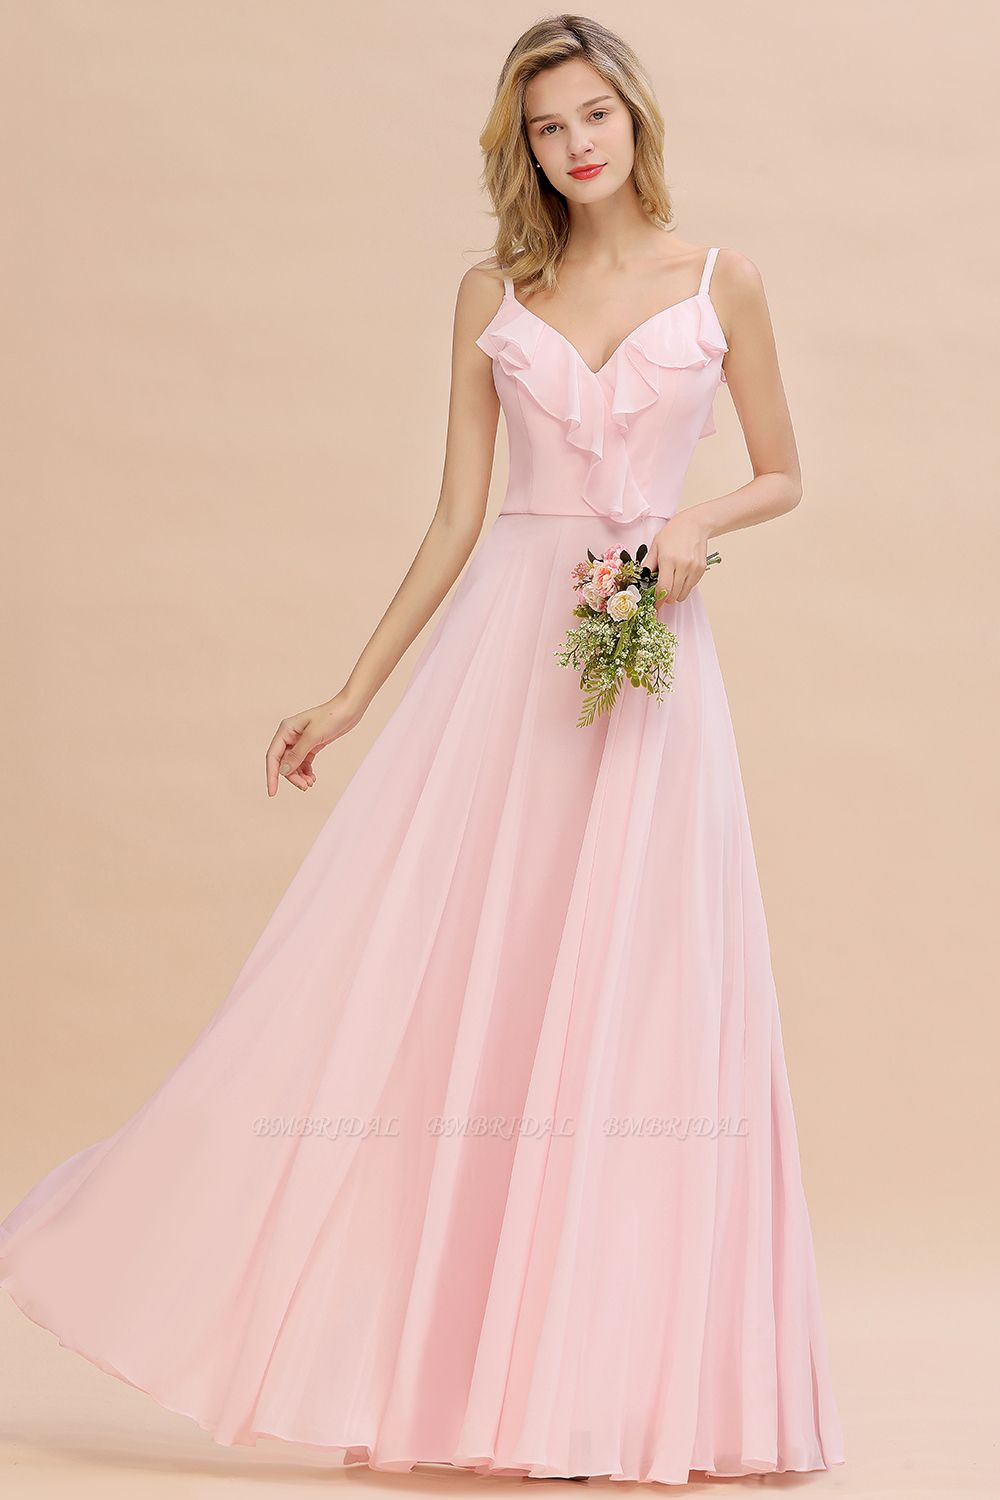 Stylish Draped V-Neck Pink Chiffon Bridesmaid Dress with Spaghetti Straps